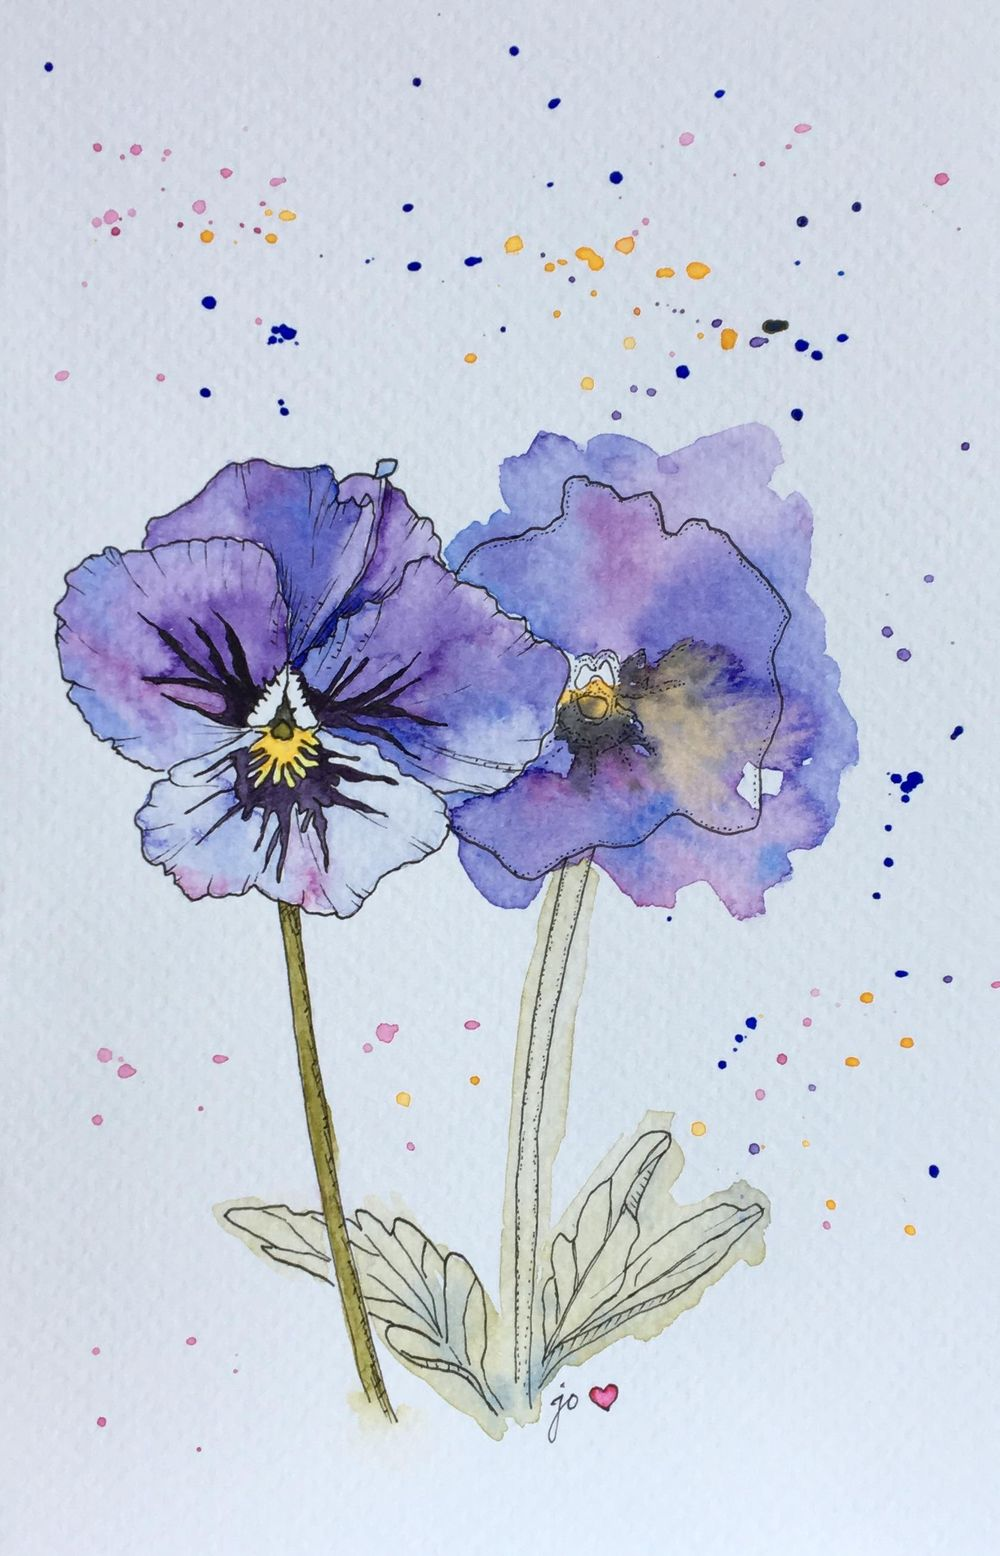 My Pansies :) - image 1 - student project